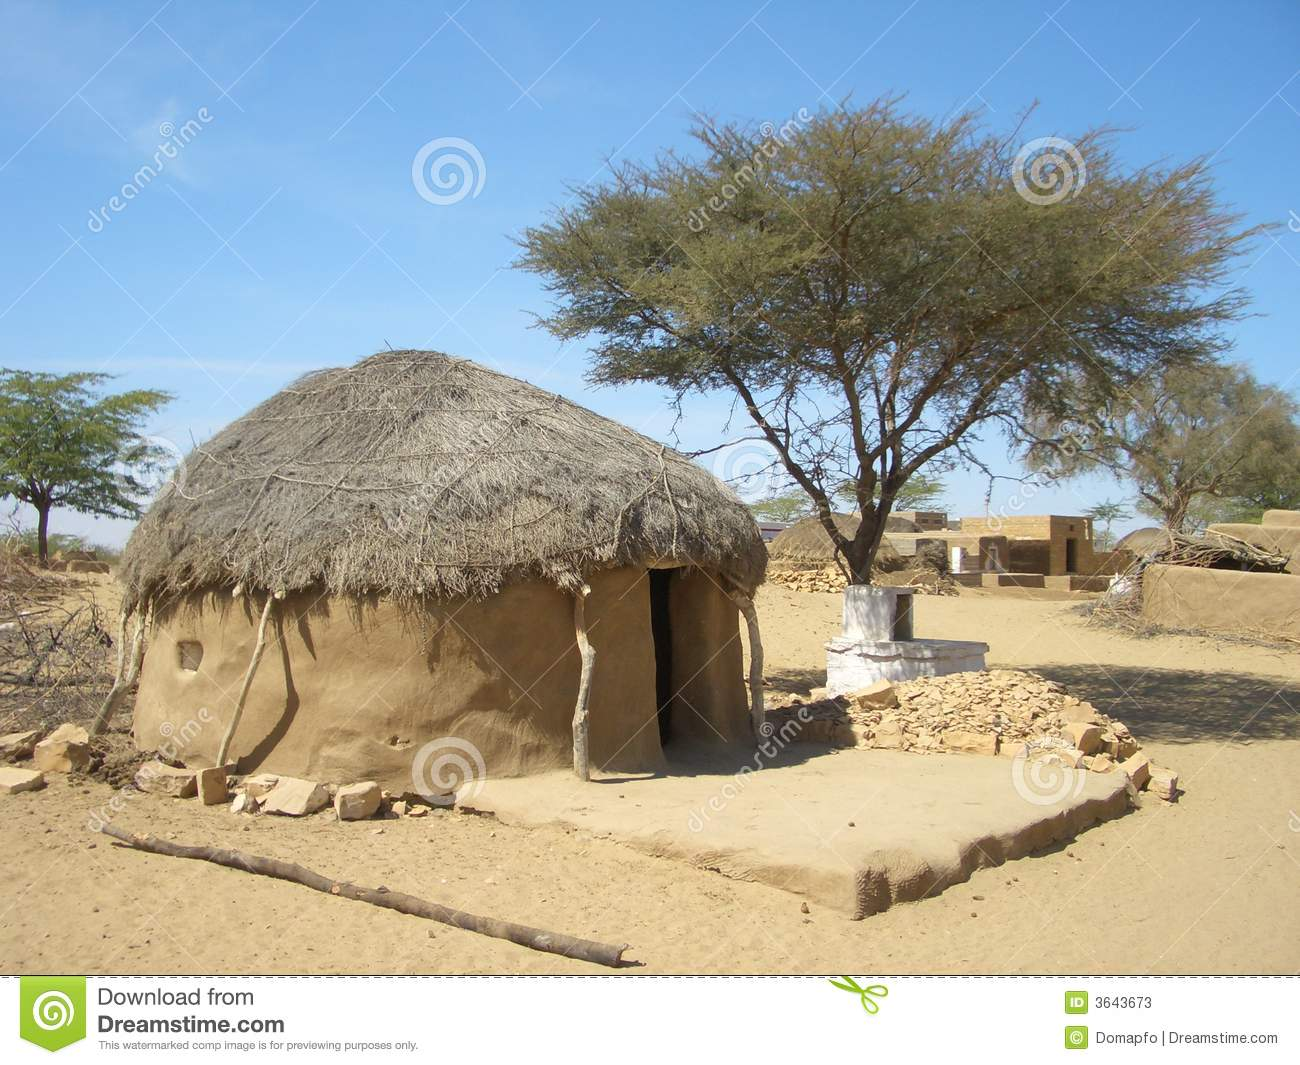 Cob cottage with thatched straw roof in African desert village, Africa ...